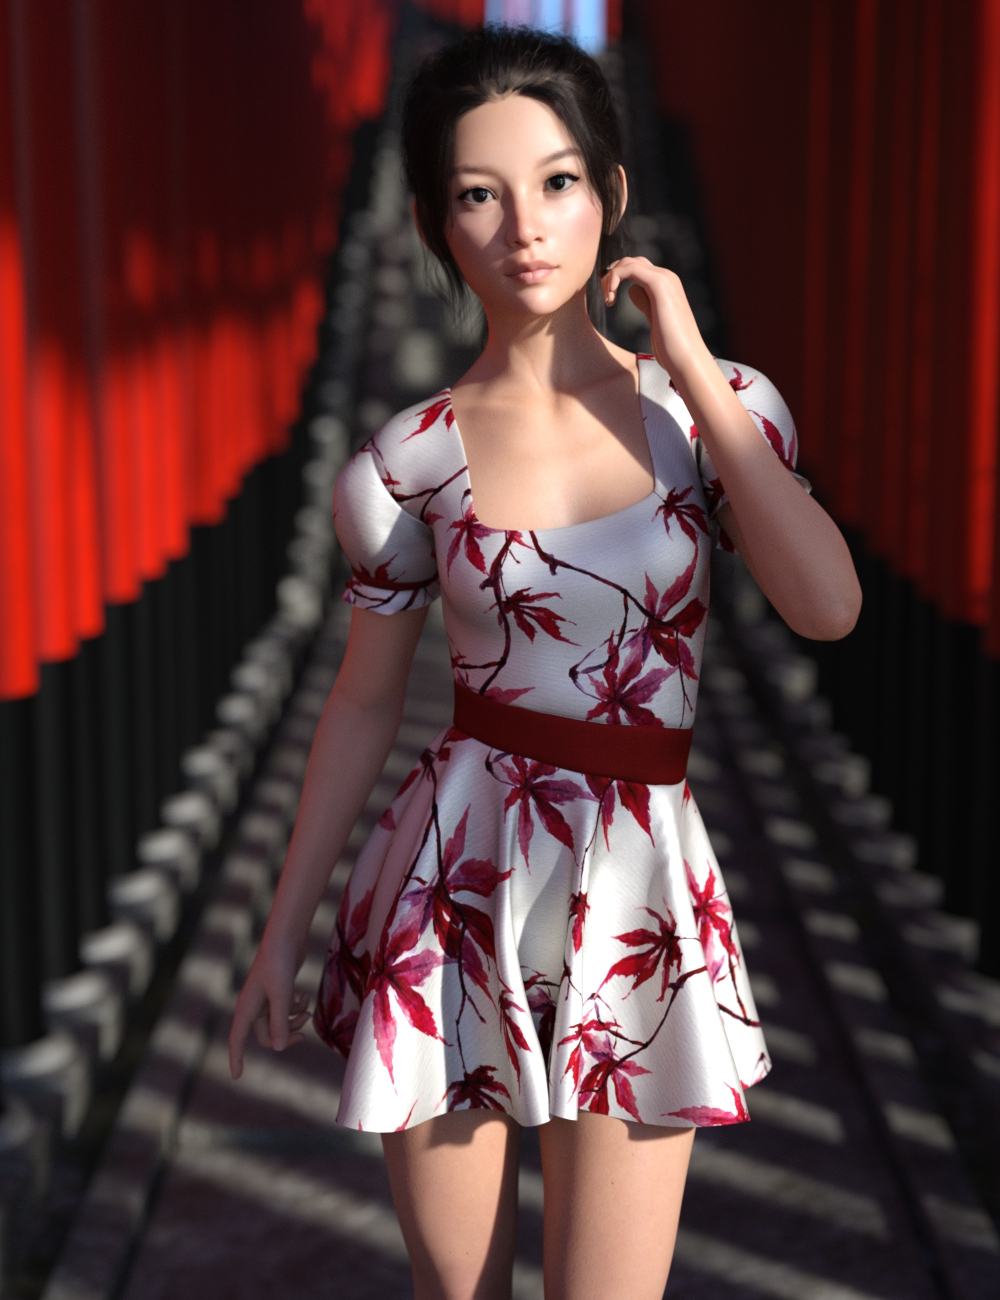 Iray Silk Shaders 01 by: Moonscape GraphicsSade, 3D Models by Daz 3D